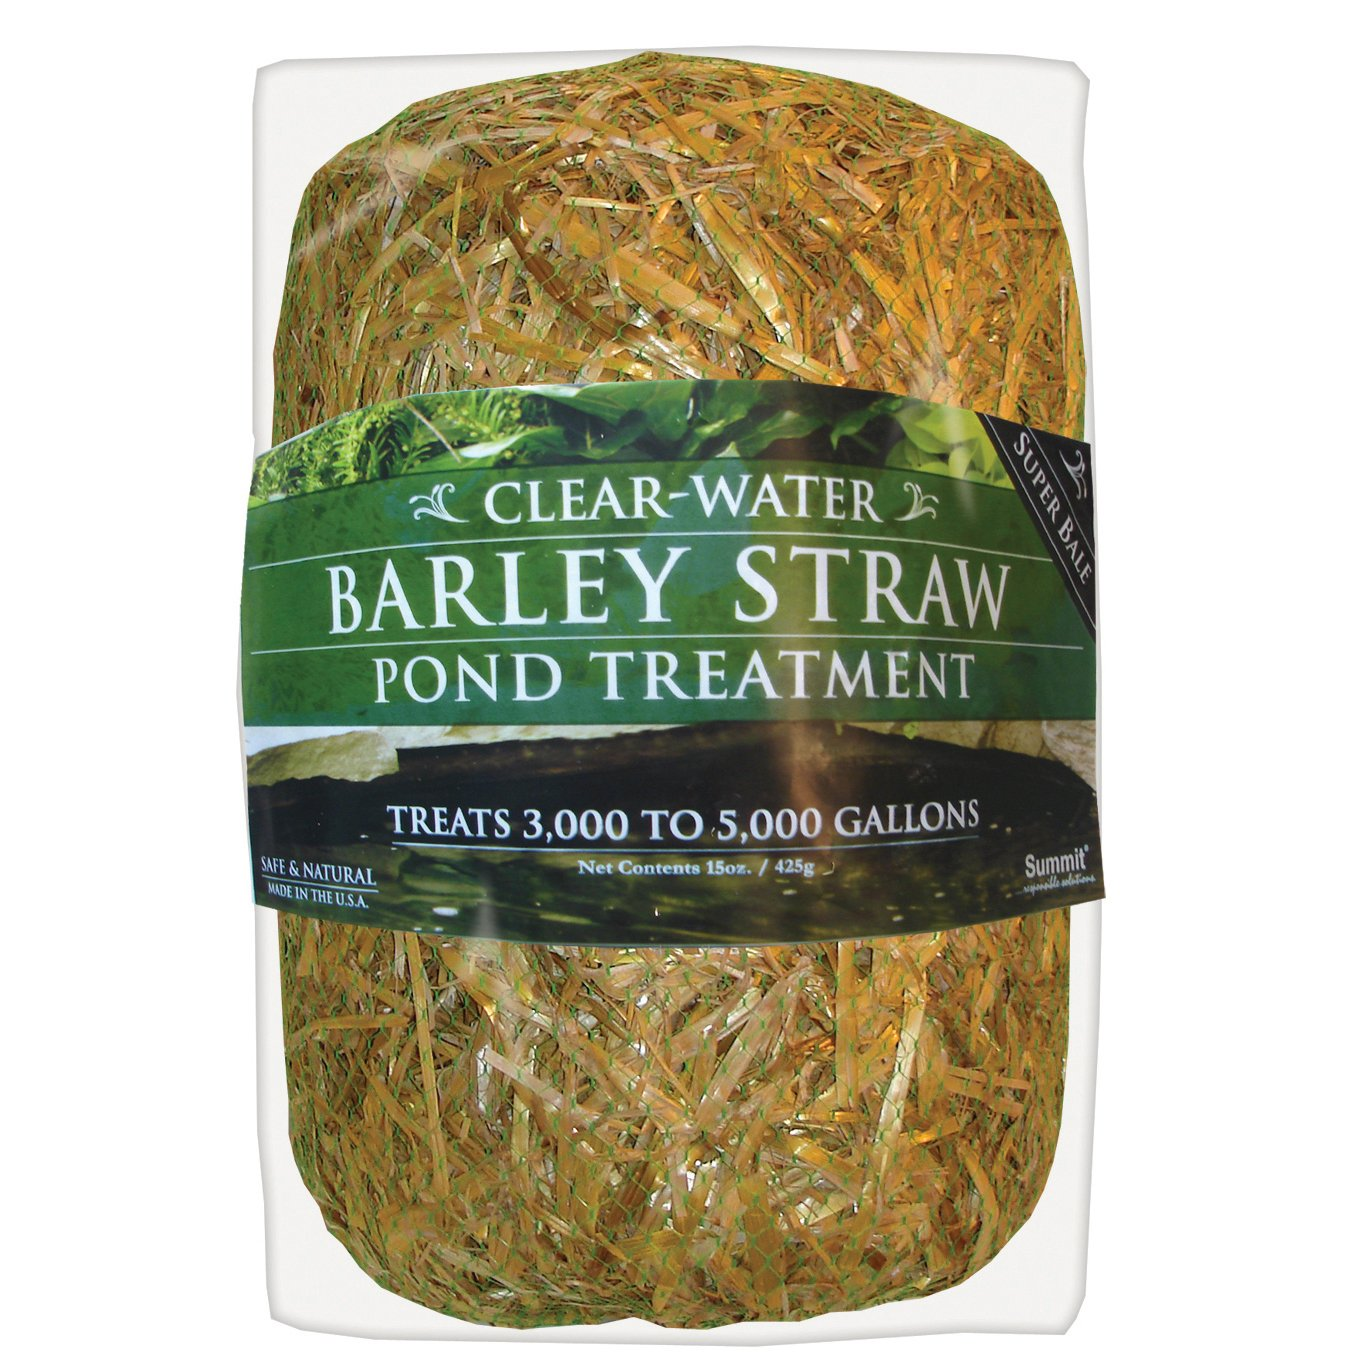 Summit 135 Clear-Water Barley Straw Bale 15 oz, Treats up to 5000-Gallons by Summit...responsible solutions